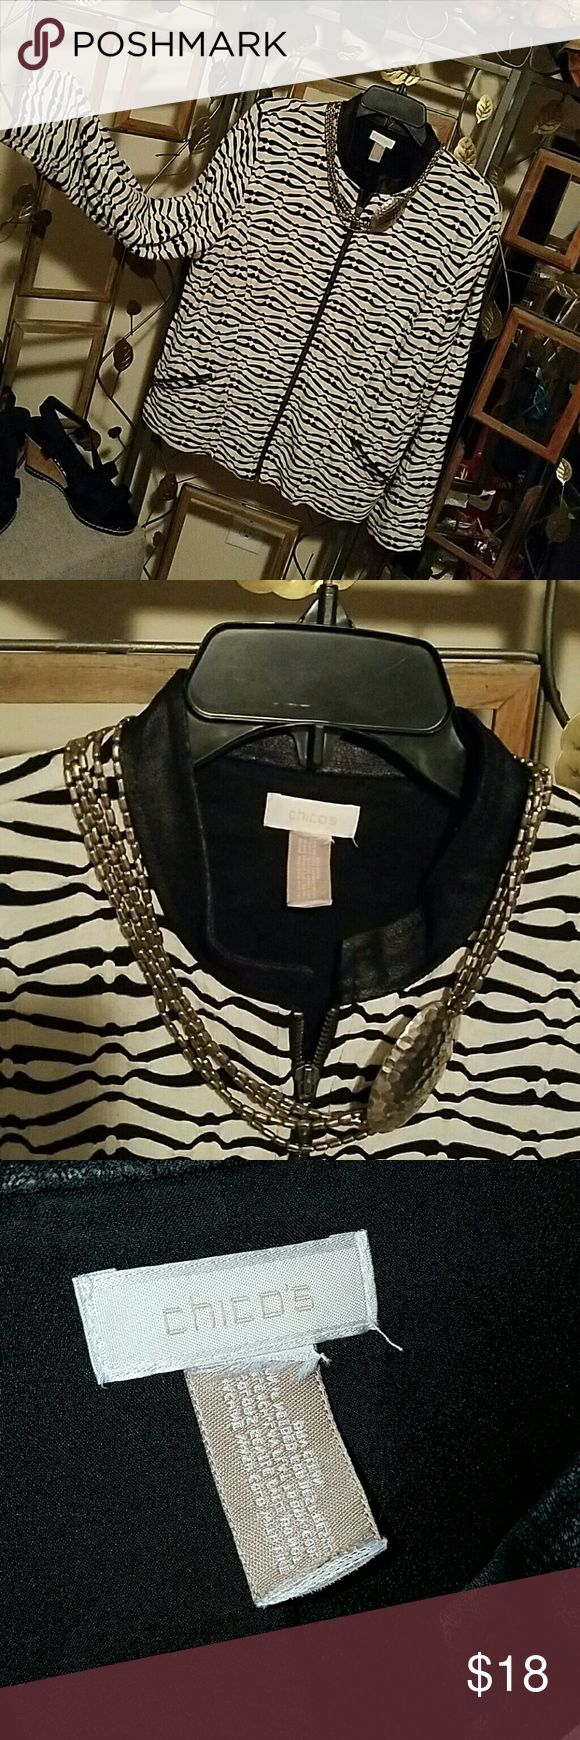 Chico's size 3 zip up zebra striped jacket. Jazzy, Chico's zebra striped, zip up jacket with faux leather trimmed collar.  Side zip pockets.  Fully lined.  Minimum wear, size tags is no longer attached but it is a size  3 in Chico's sizing or a 14-16 in regular size charts.  In great condition. Chico's Jackets & Coats